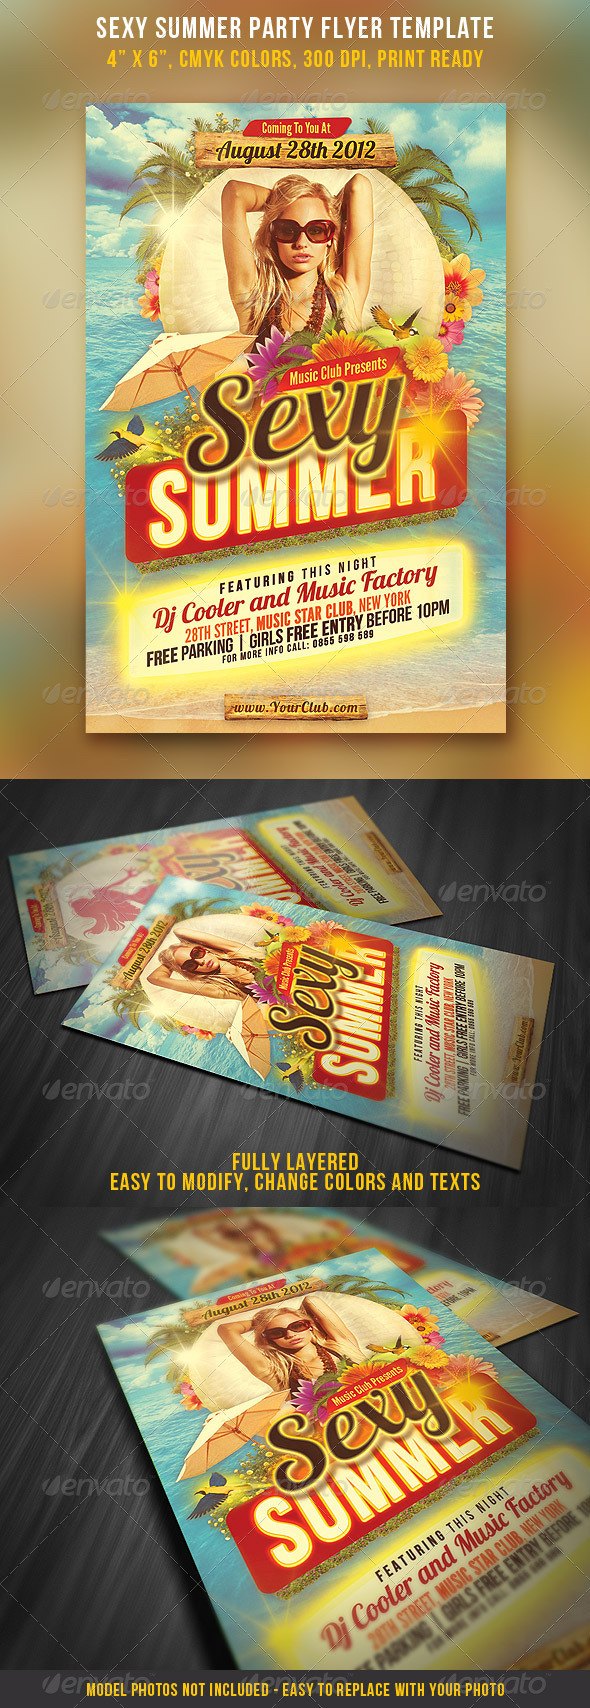 Sexy Summer Party Flyer Template